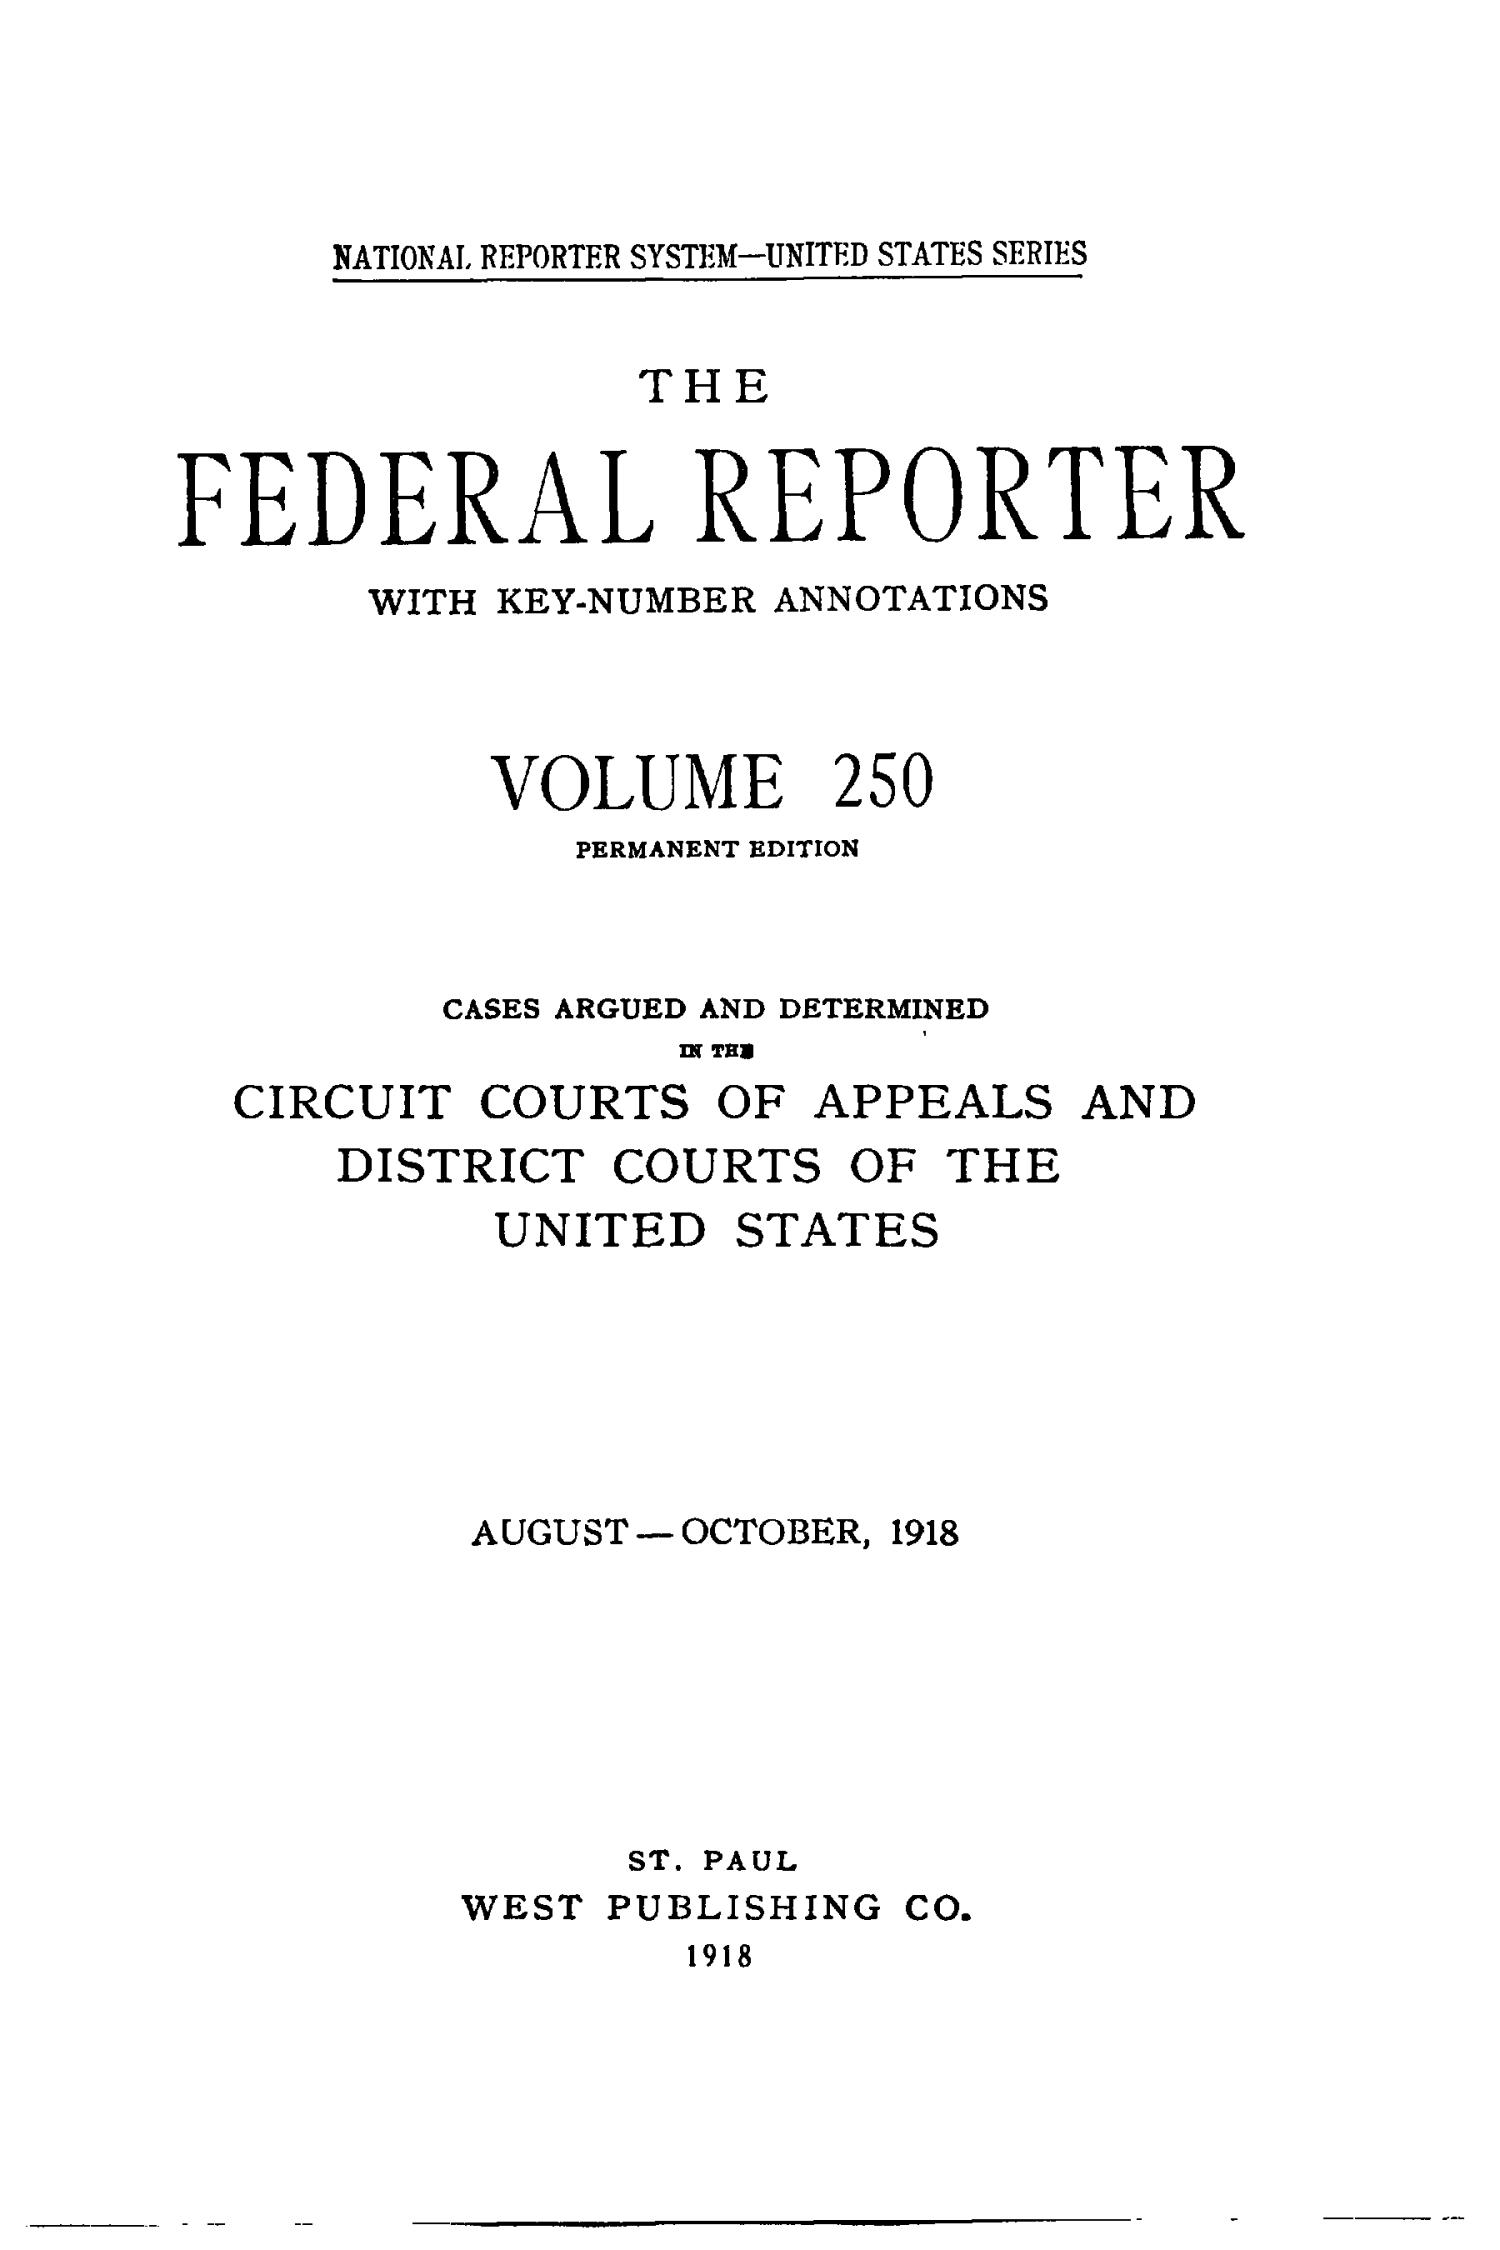 The Federal Reporter with Key-Number Annotations, Volume 250: Cases Argued and Determined in the Circuit Courts of Appeals and District Courts of the United States, August-October, 1918.                                                                                                      Title Page